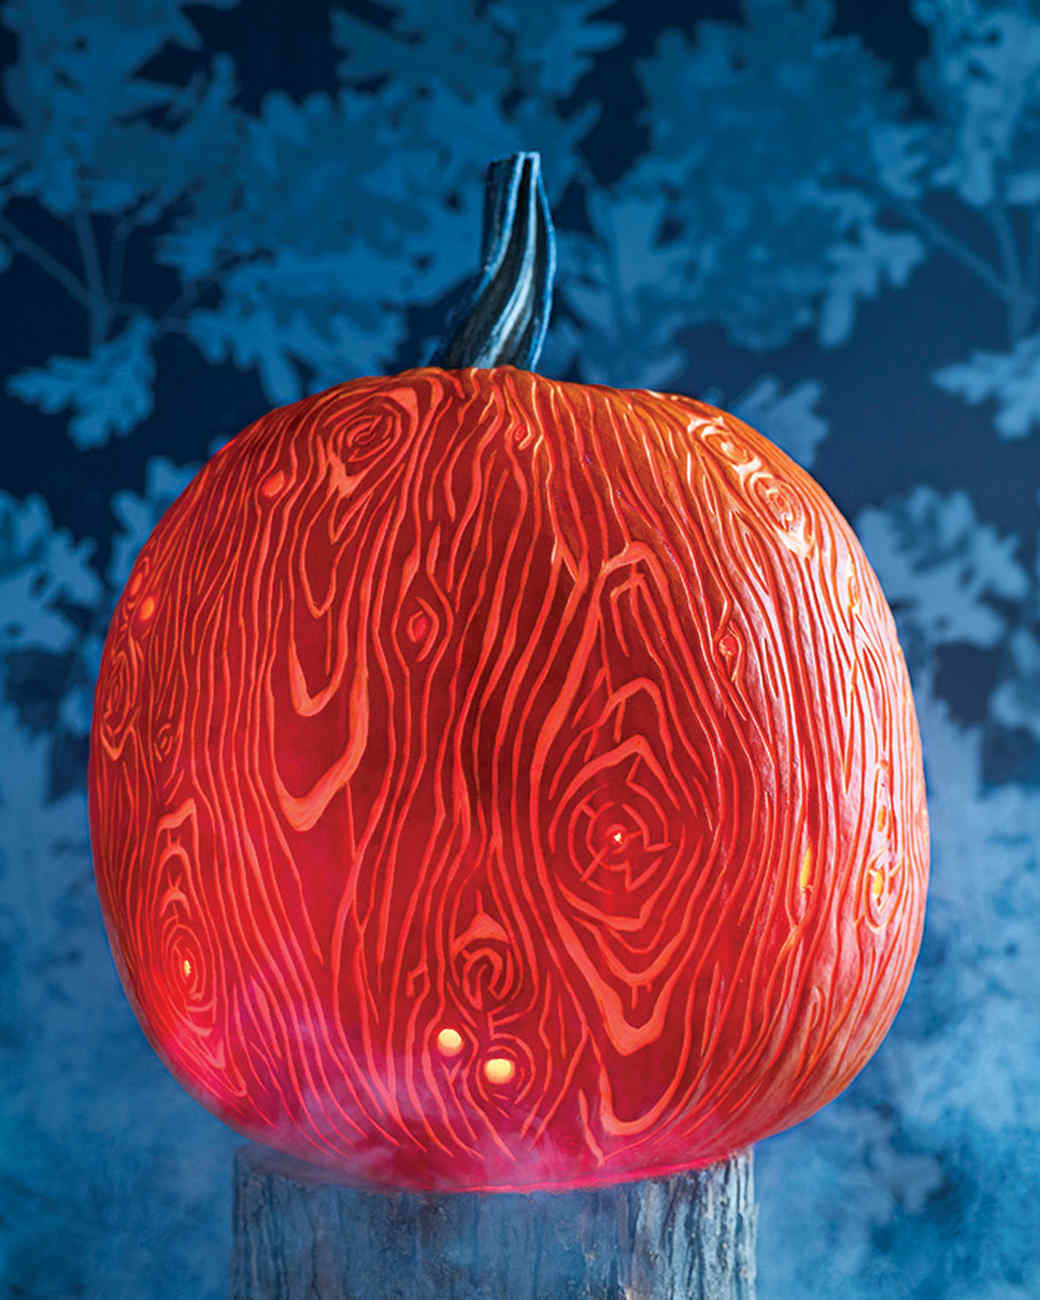 ml105470_1010_faux_pumpkin2.jpg